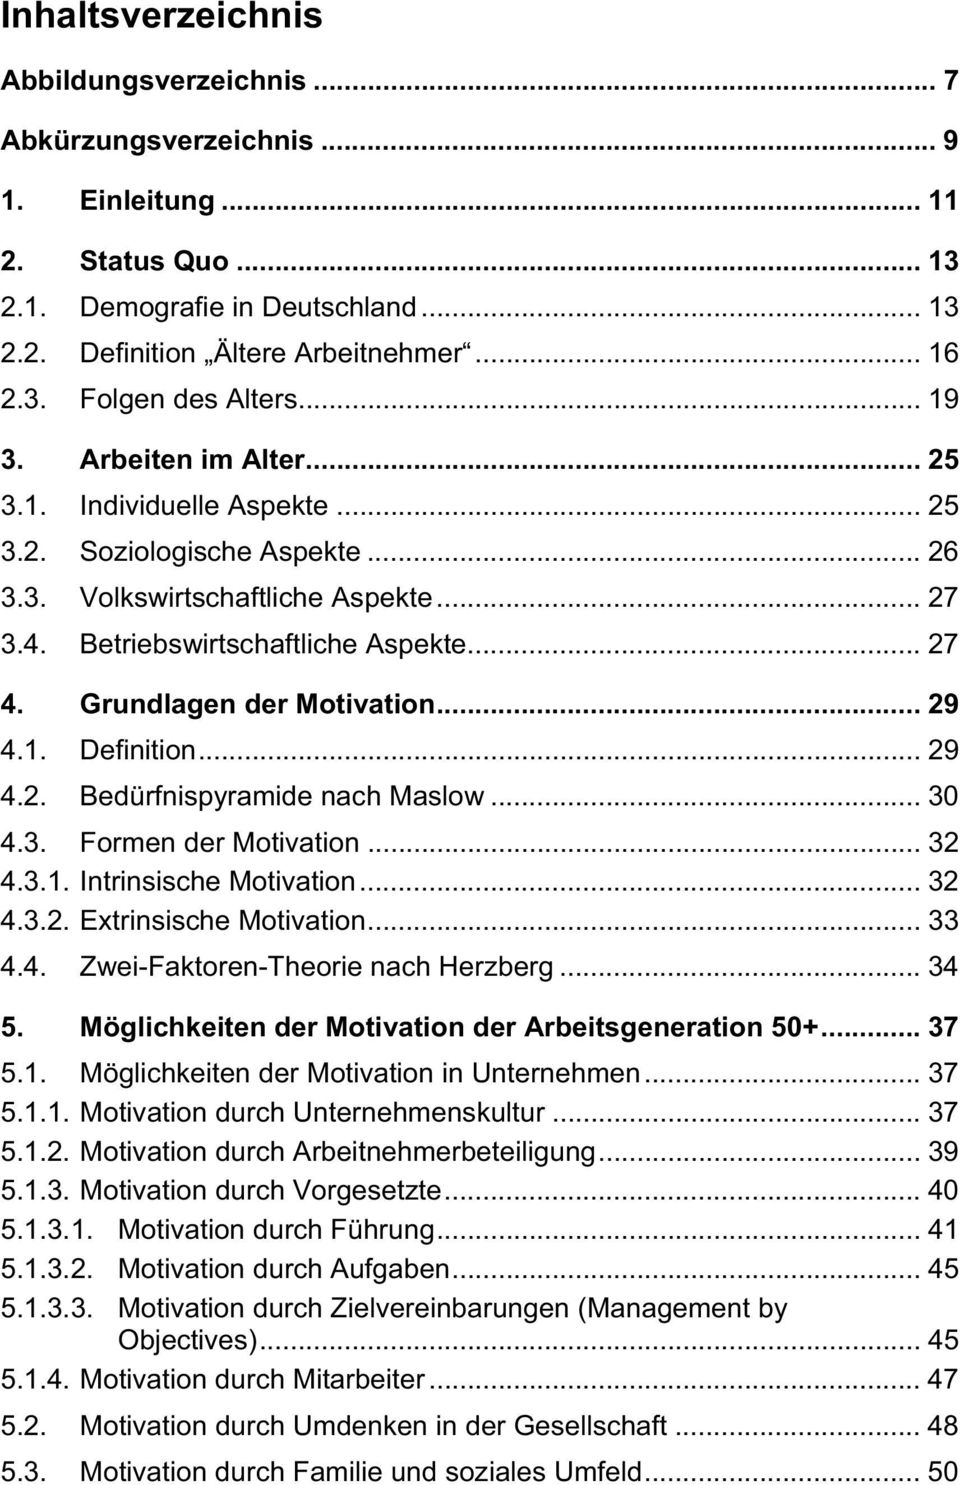 Grundlagen der Motivation... 29 4.1. Definition... 29 4.2. Bedürfnispyramide nach Maslow... 30 4.3. Formen der Motivation... 32 4.3.1. Intrinsische Motivation... 32 4.3.2. Extrinsische Motivation.